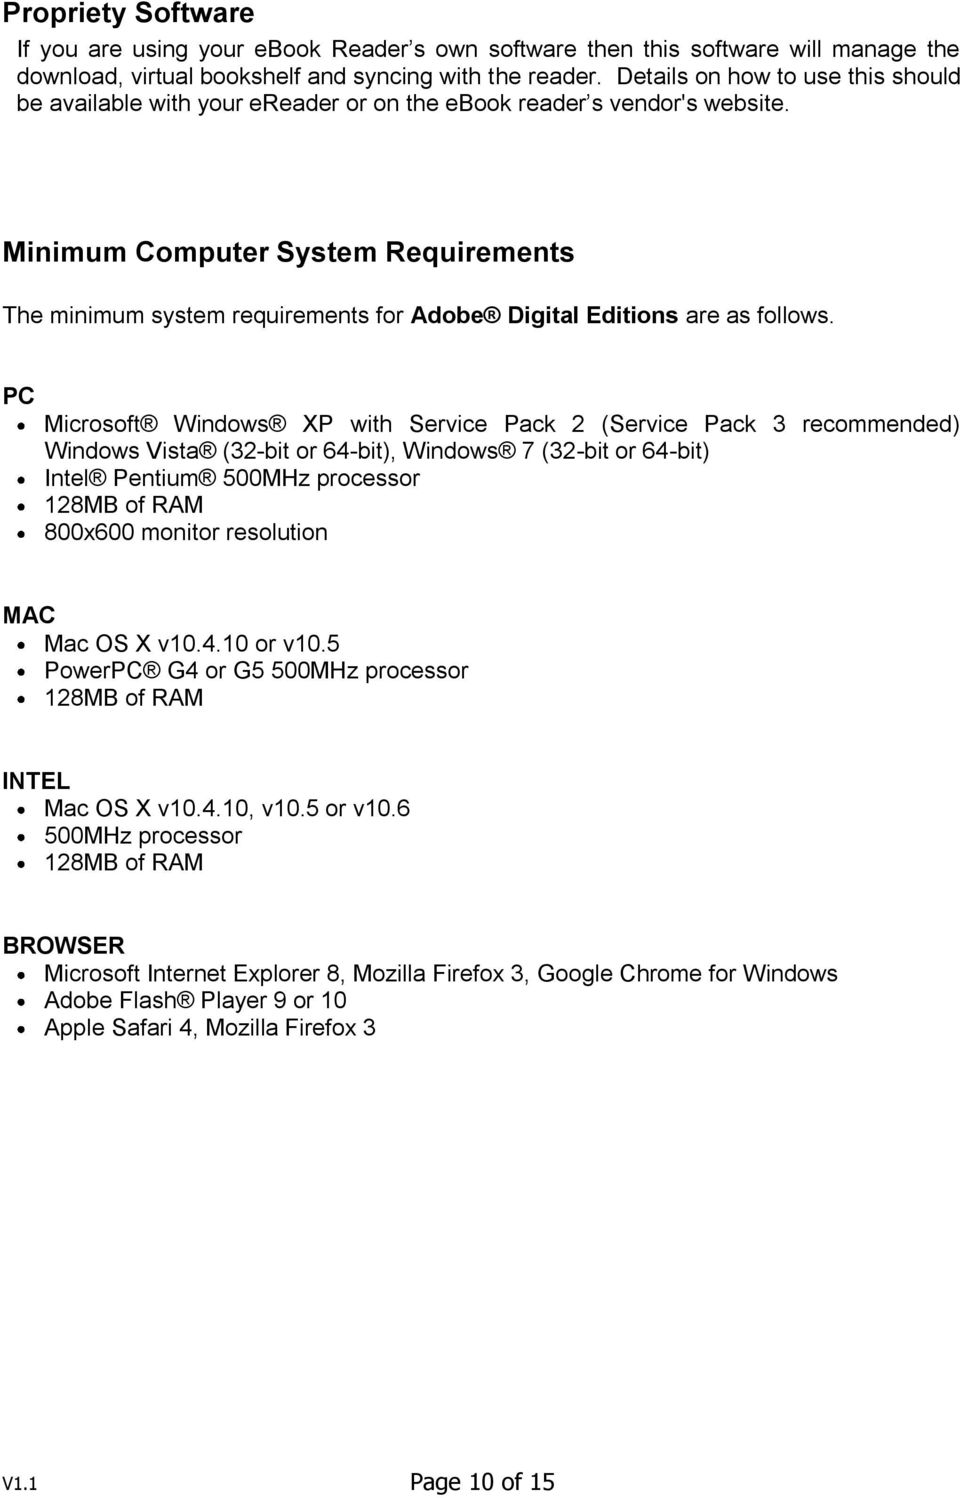 Minimum Computer System Requirements The minimum system requirements for Adobe Digital Editions are as follows.